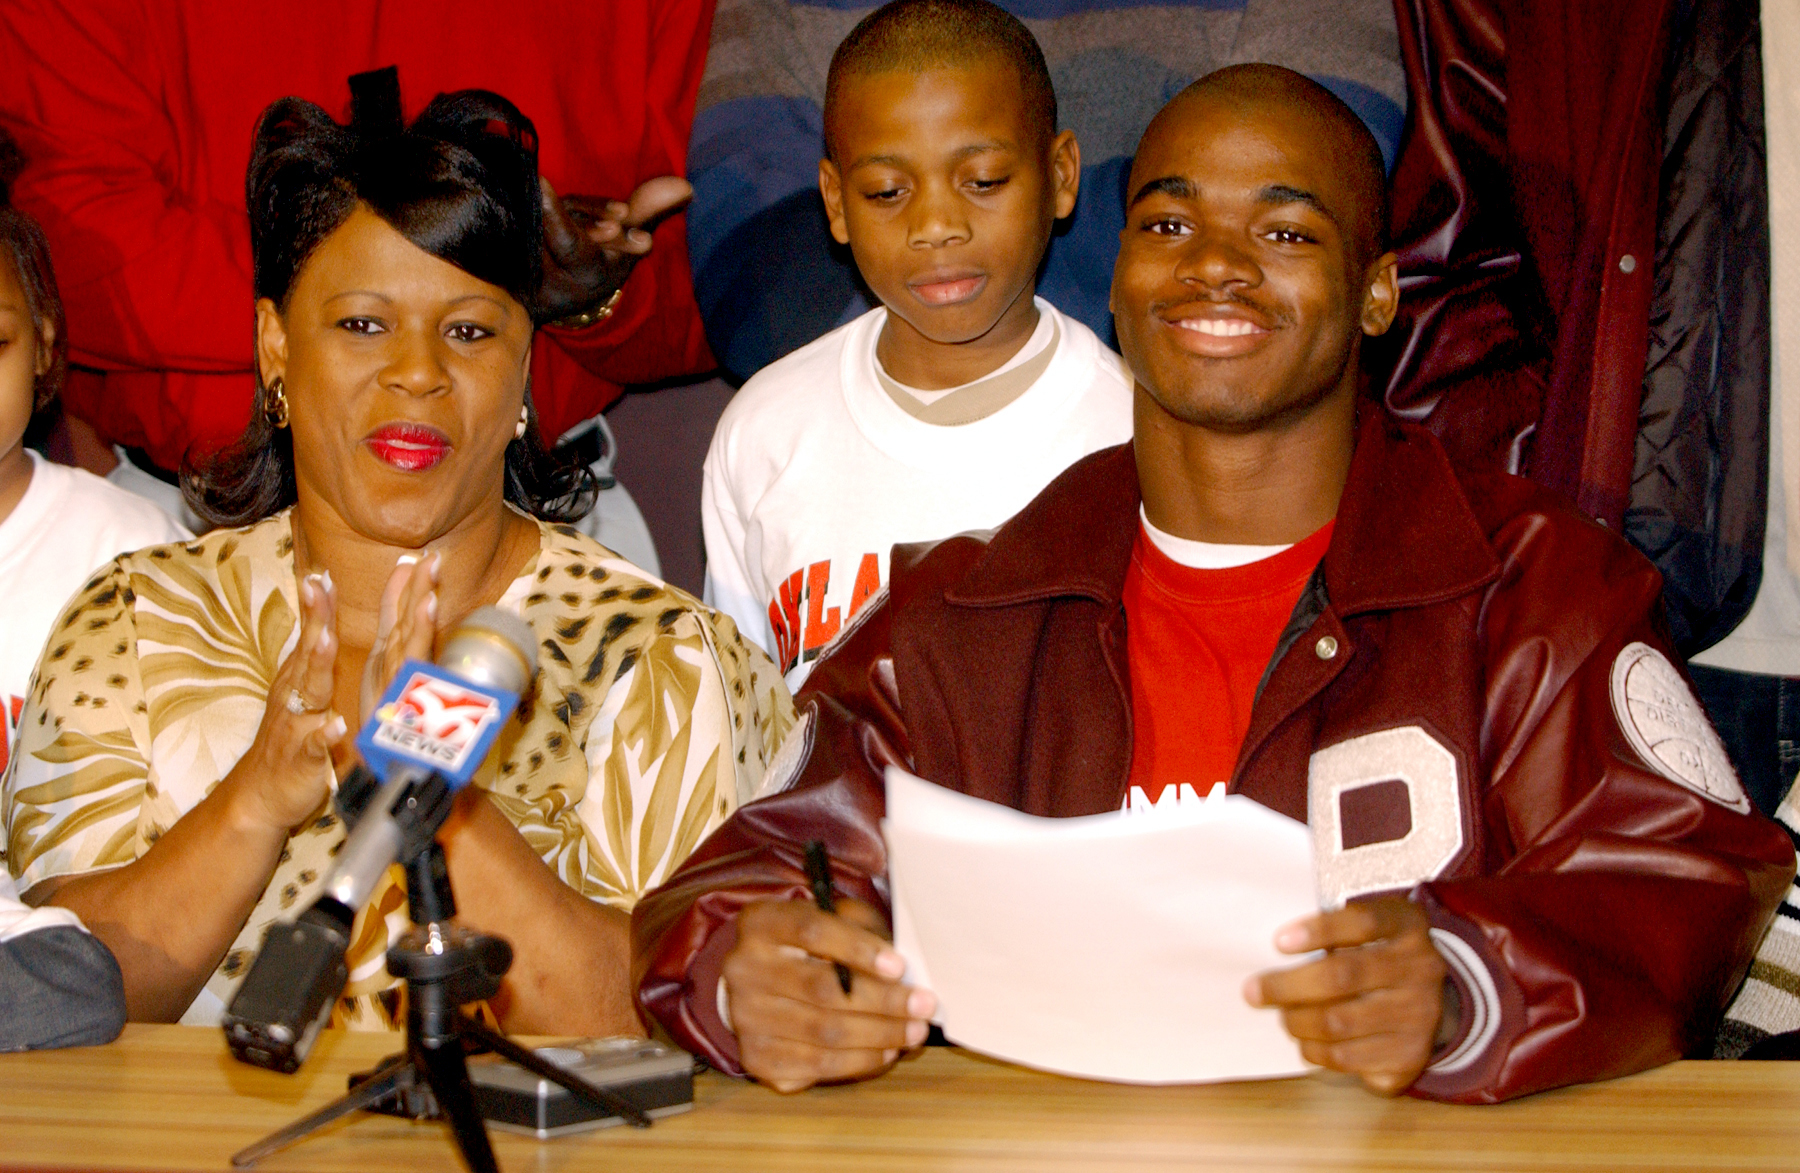 Palestine running back Adrian Peterson, right, smiles after signing a national letter of intent to play football for Oklahoma on Feb. 4, 2004, in Palestine, Texas. At left is his mother Bonita Jackson, and at center is his brother, Jaylon Jackson.